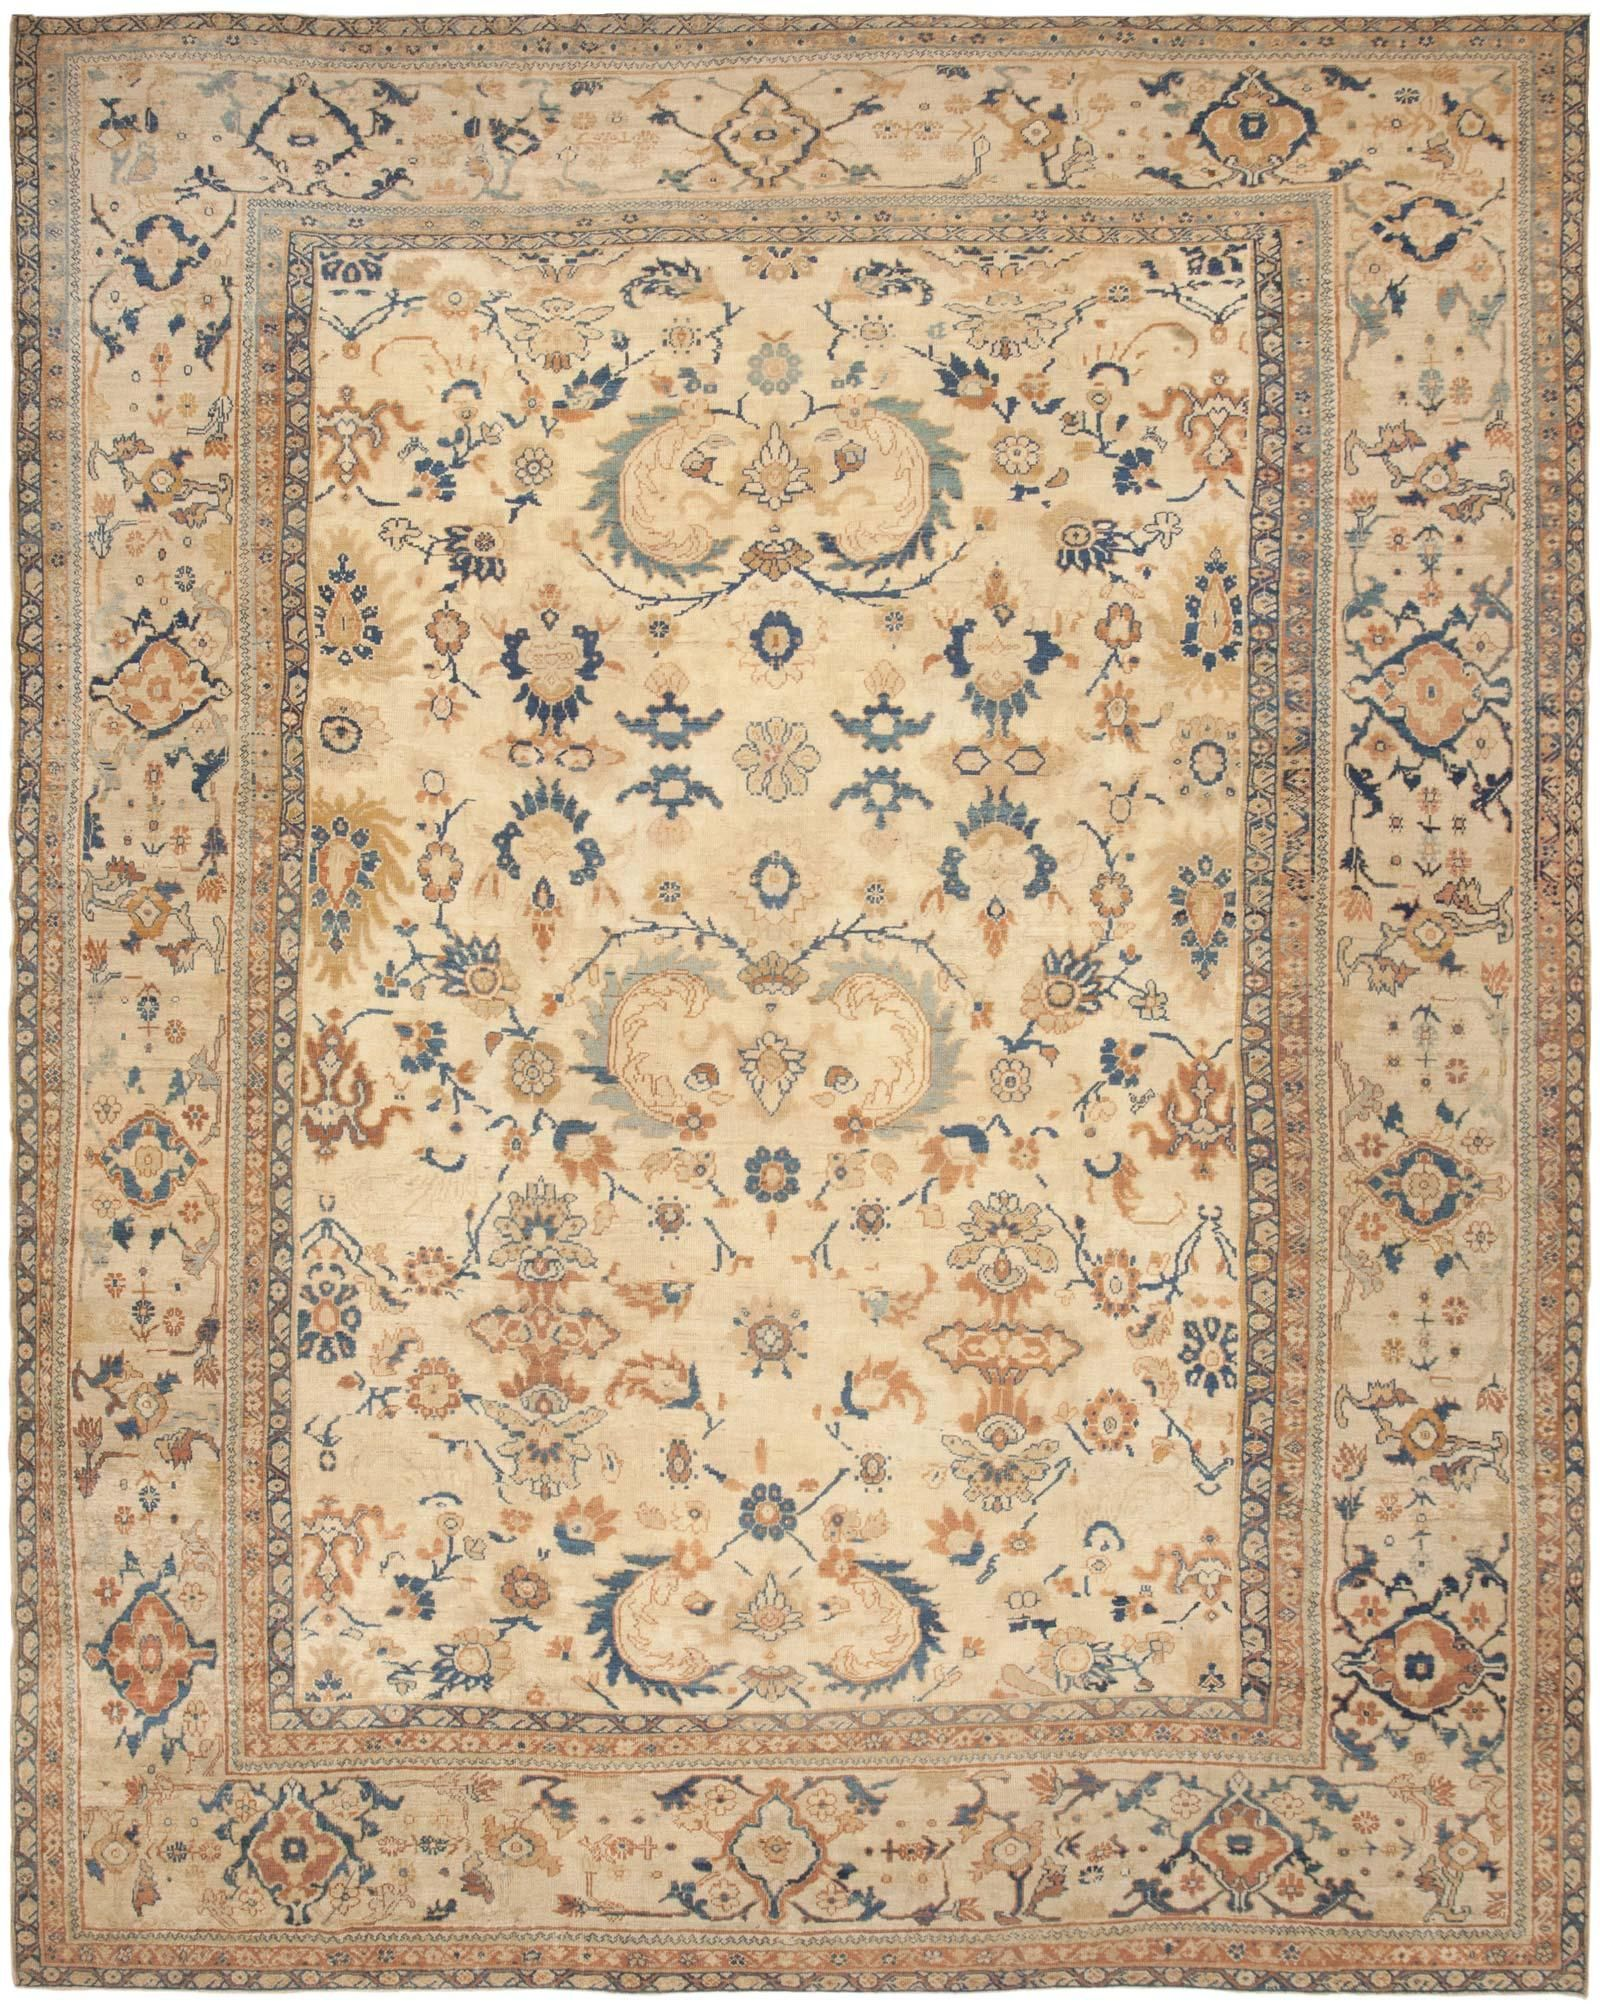 View This Beautiful Antique Sultanabad Persian Rug 44726 From Nazmiyal S Fine Rugs And Decorative Carpet Collection